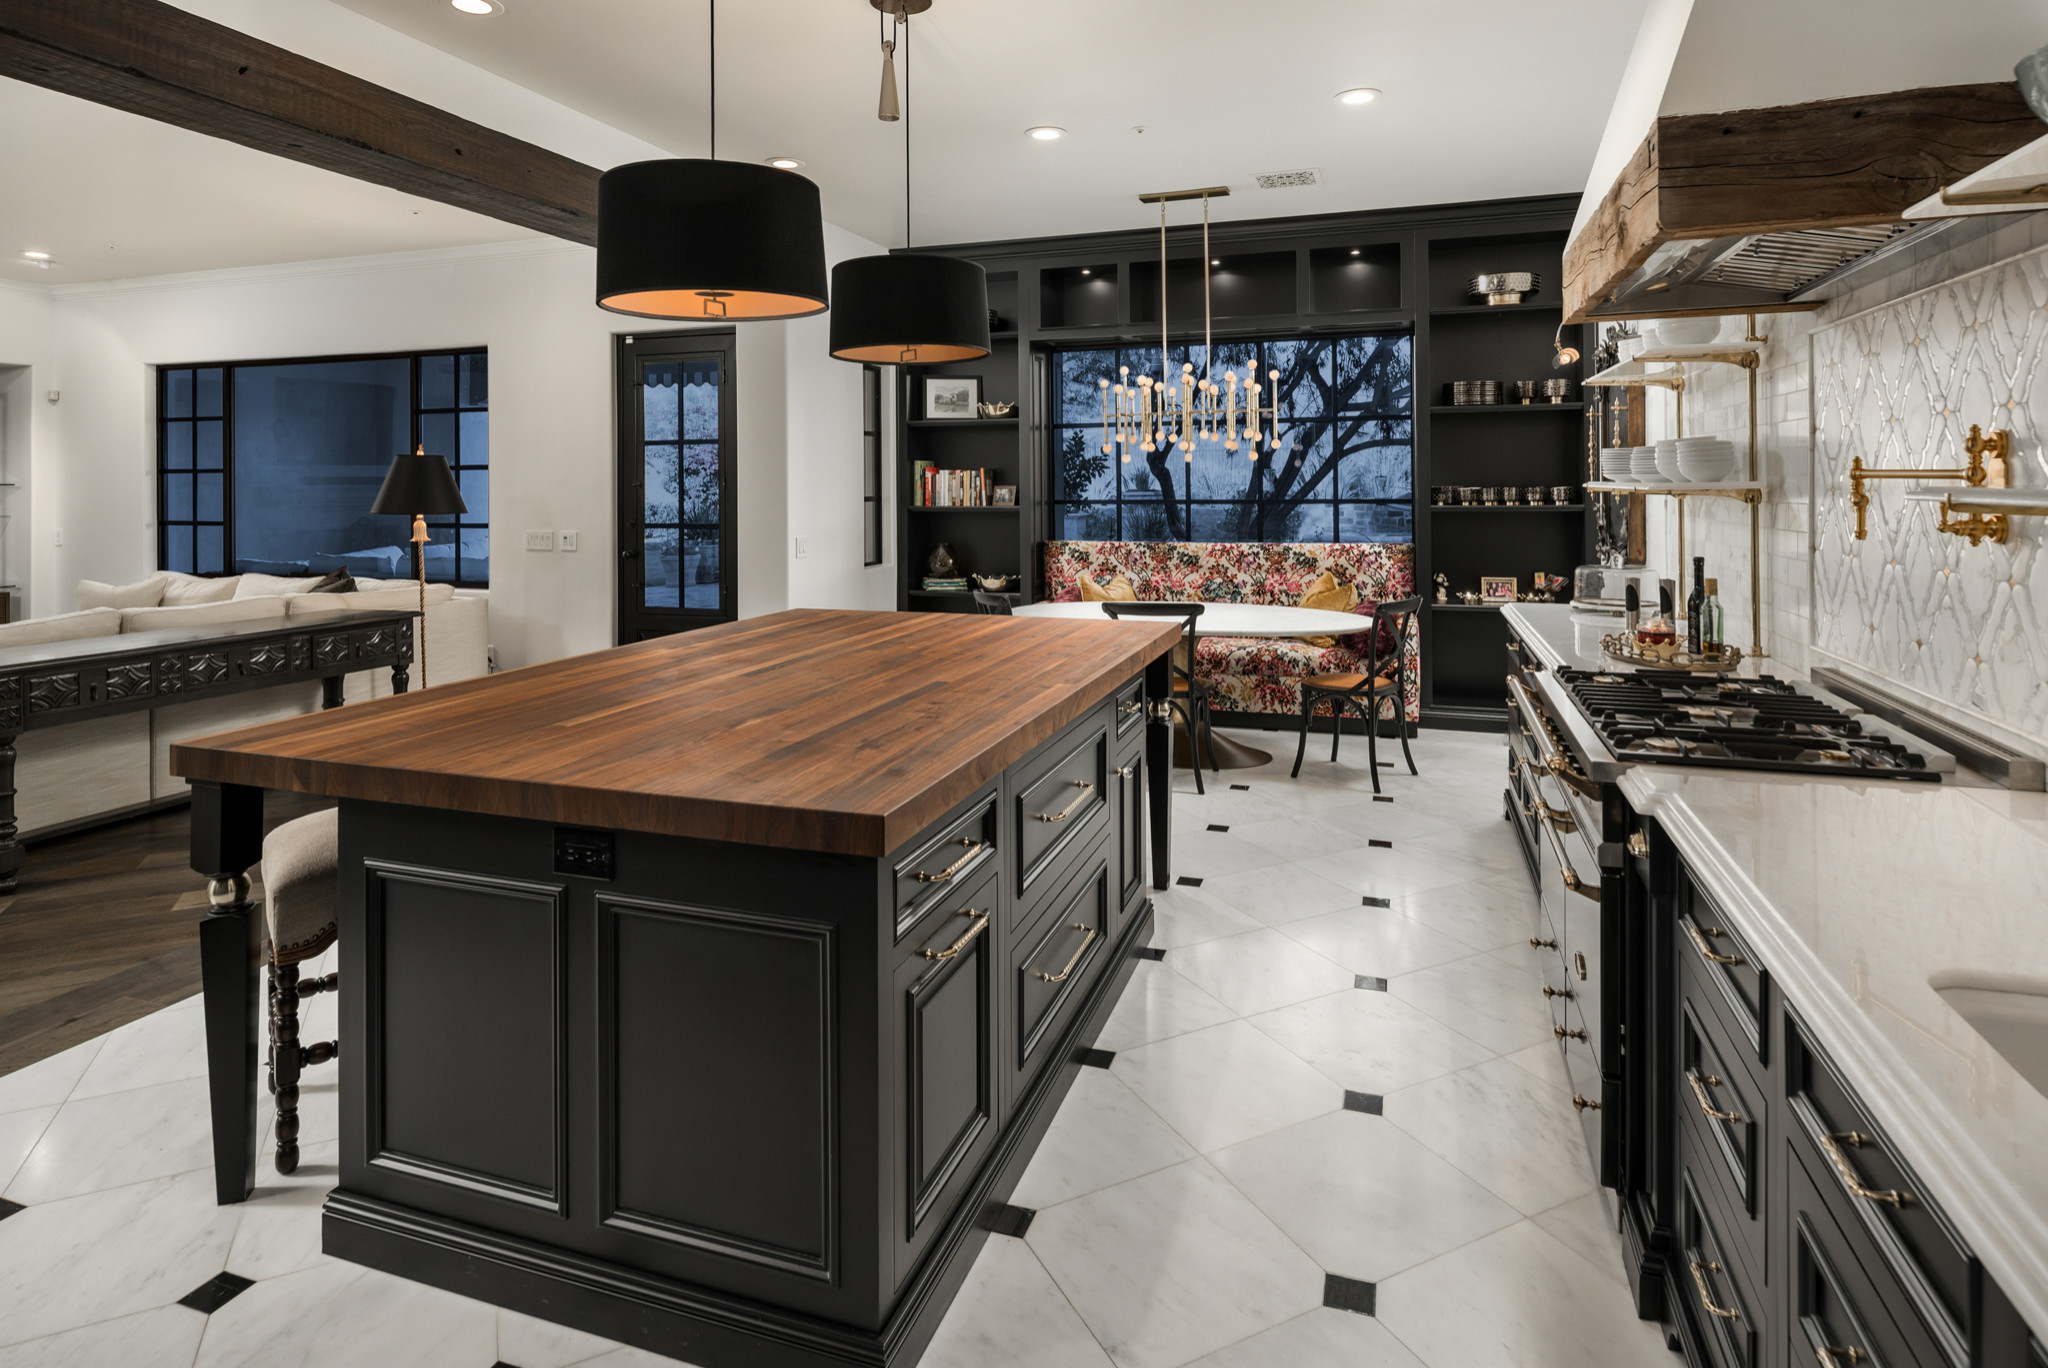 75 Beautiful Marble Floor Kitchen With Black Cabinets Pictures Ideas December 2020 Houzz